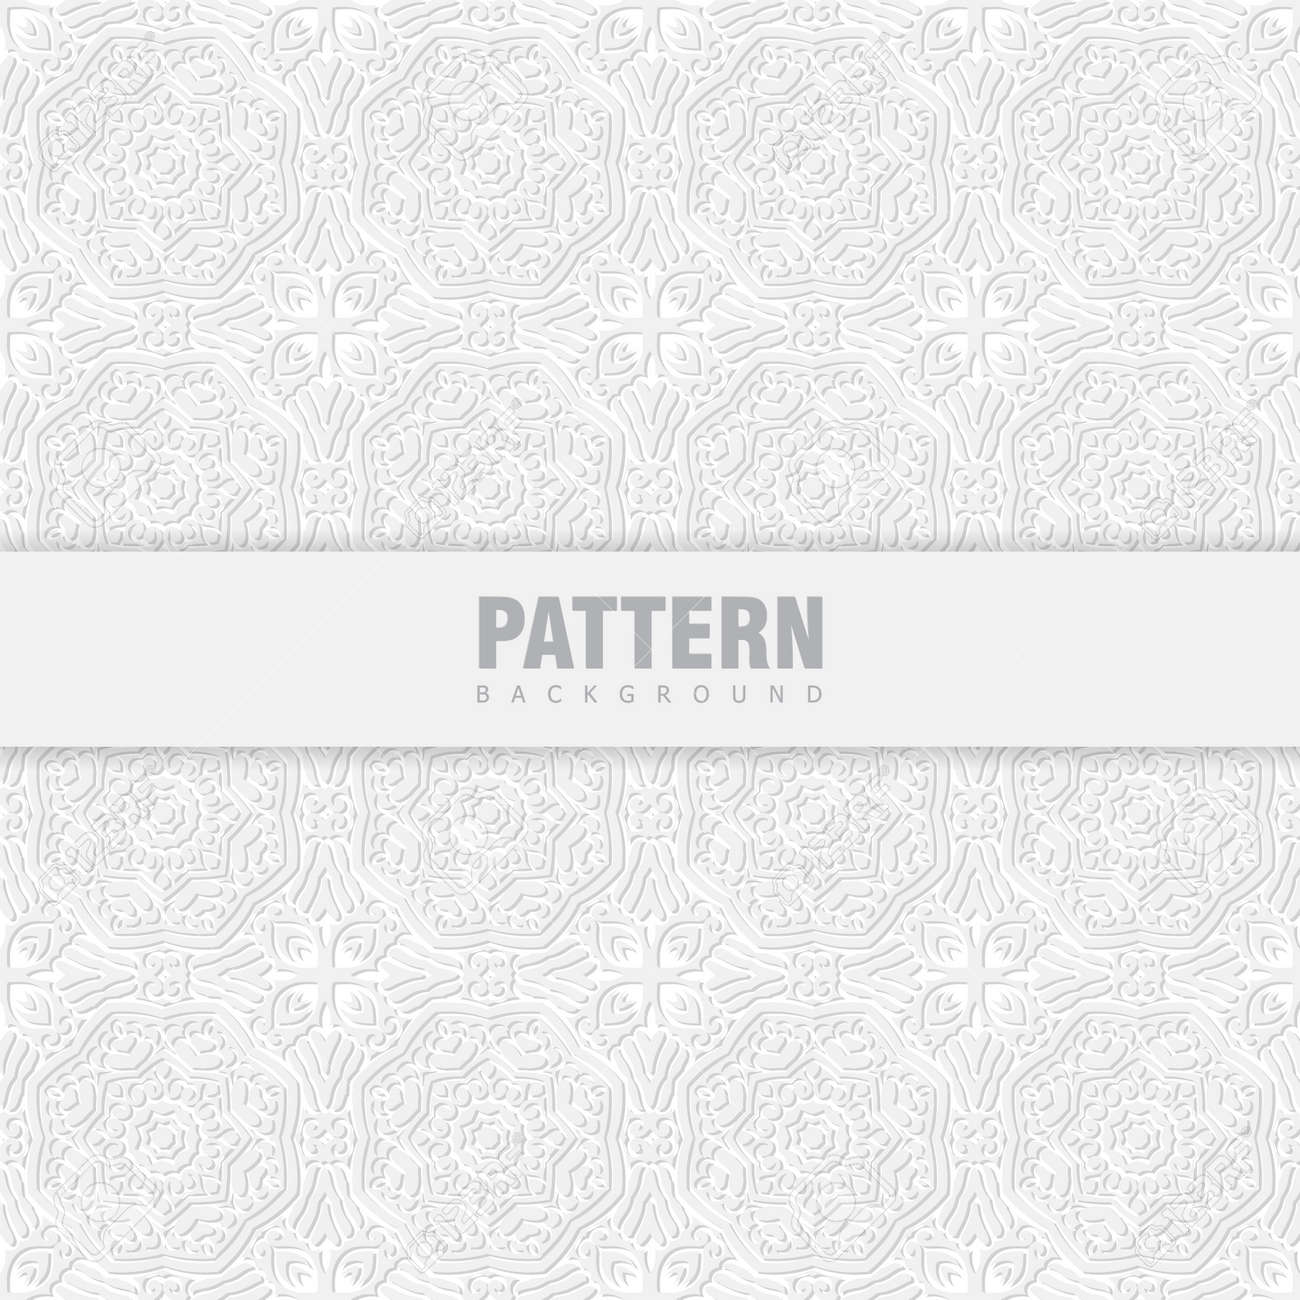 oriental patterns. background with Arabic ornaments. Patterns, backgrounds and wallpapers for your design. Textile ornament - 155745348